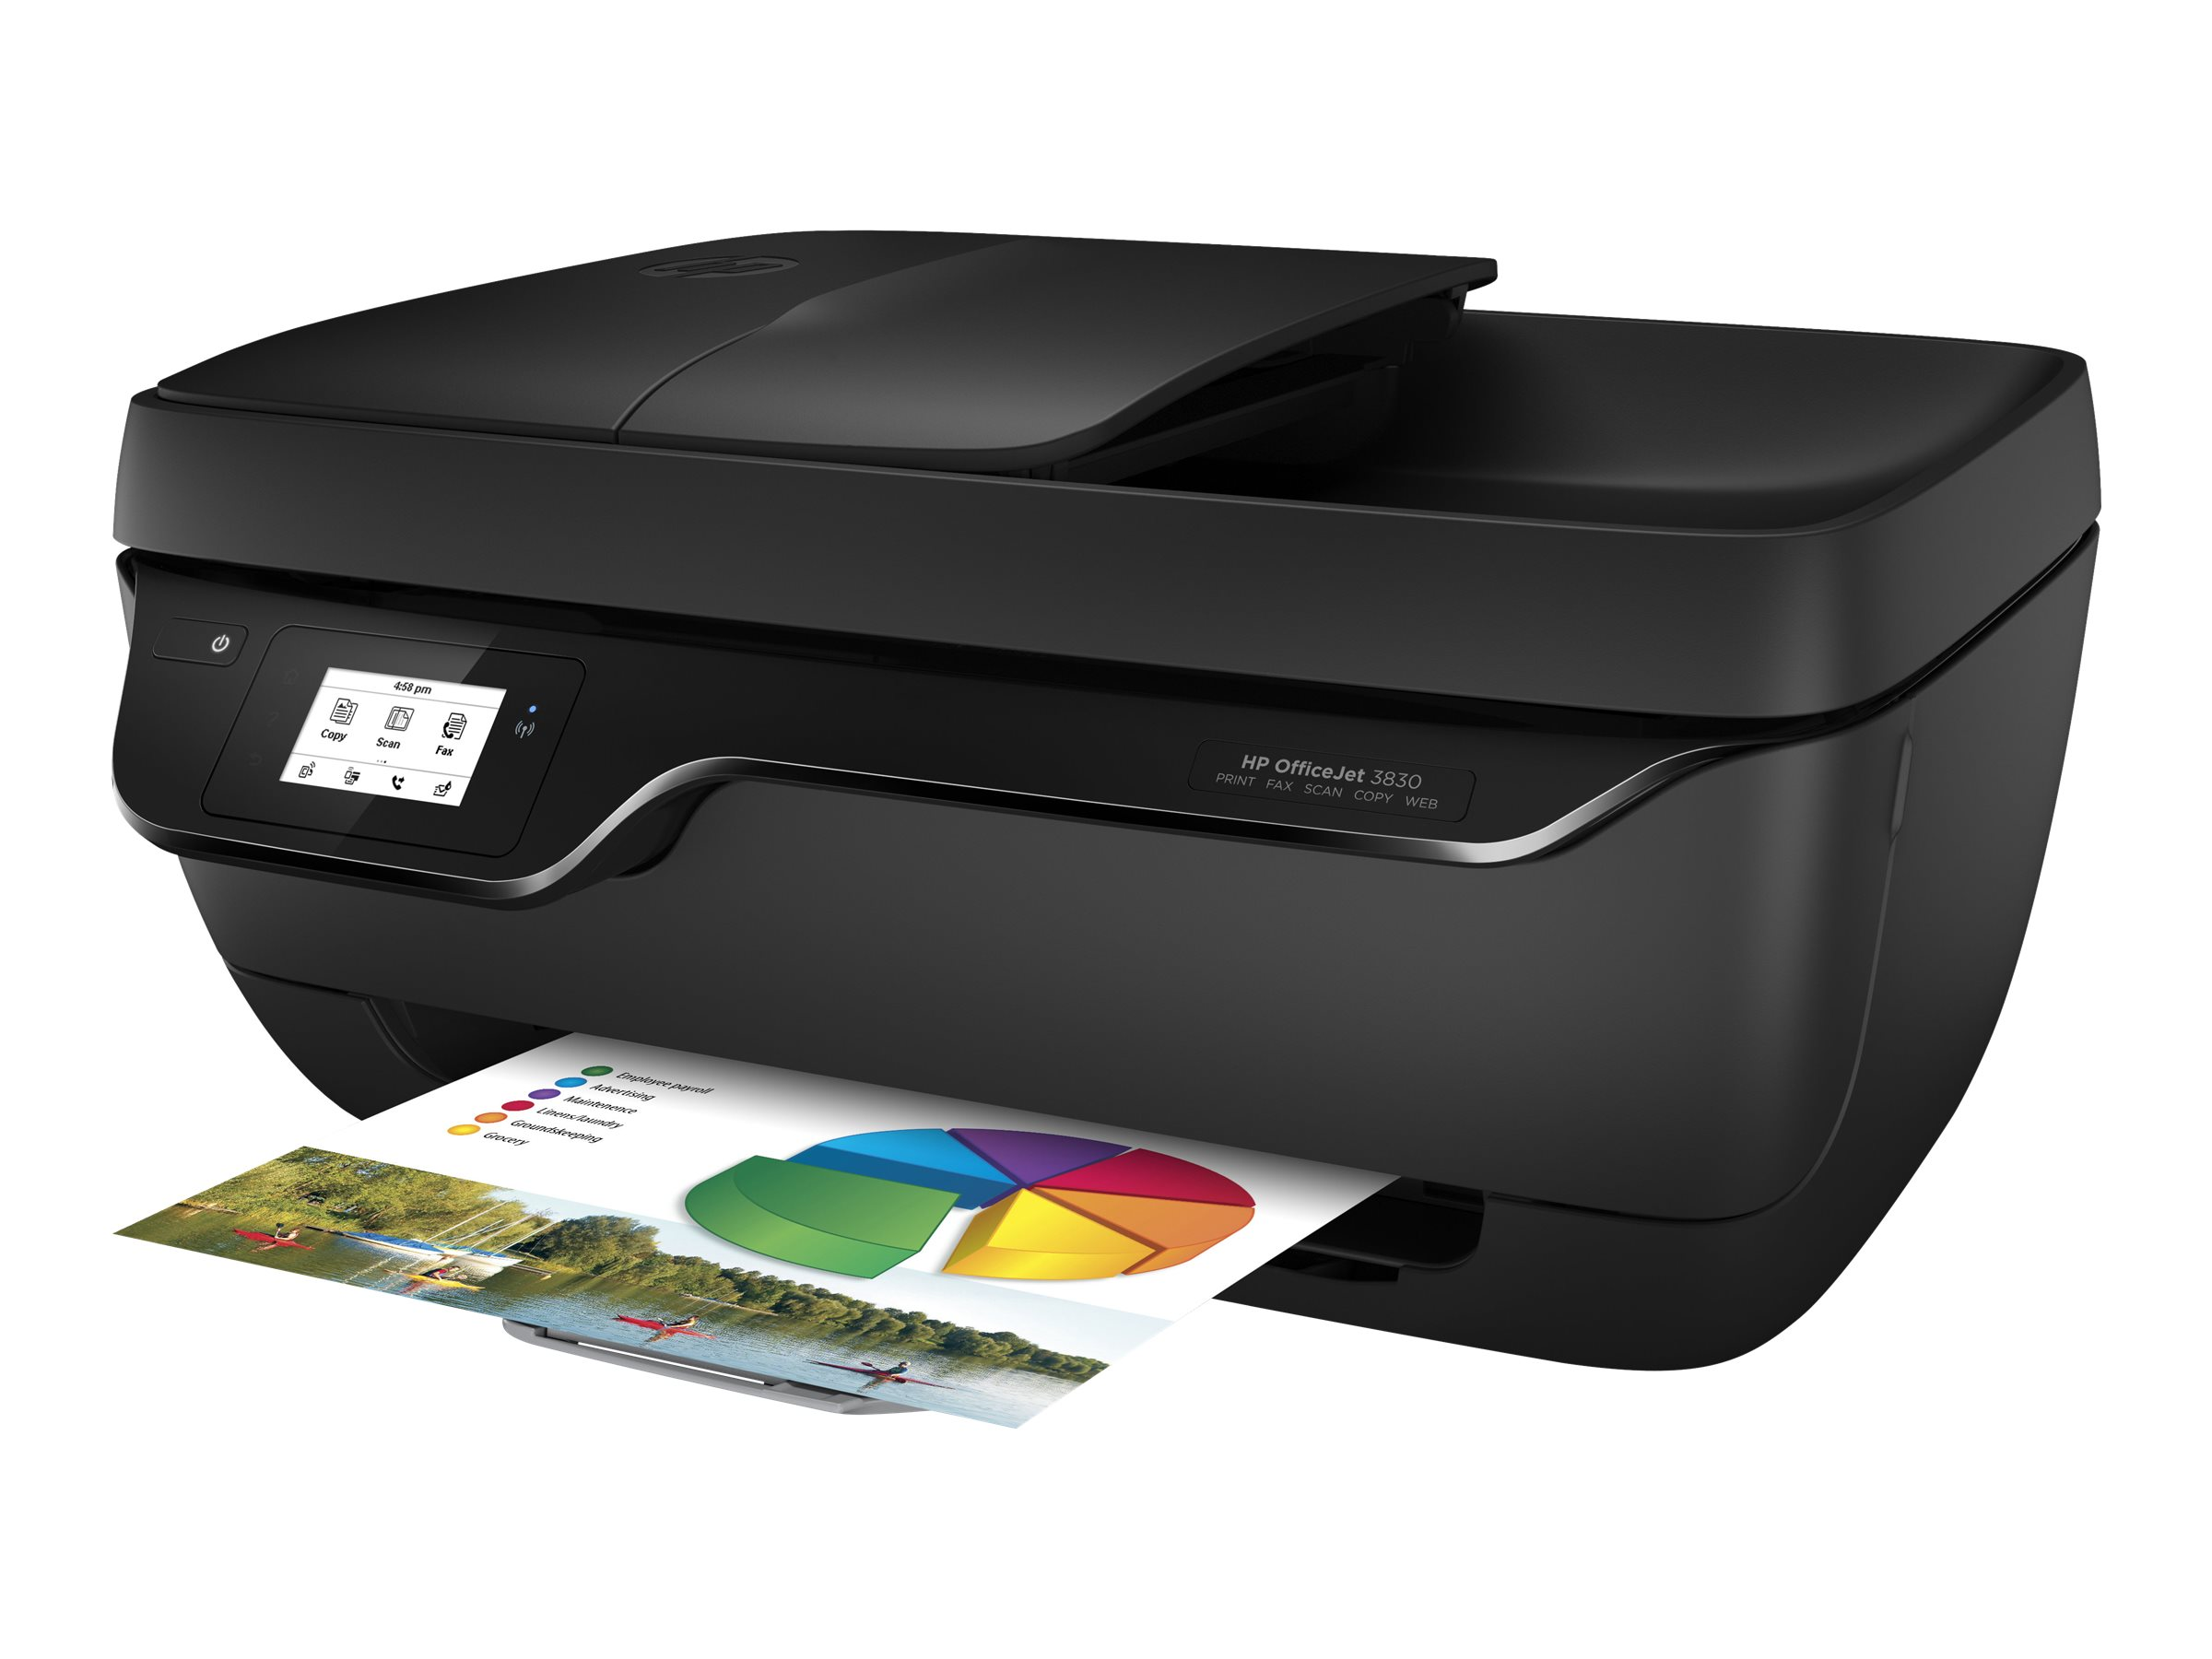 HP Officejet 3833 All-in-One - Multifunktionsdrucker - Farbe - Tintenstrahl - 216 x 297 mm (Original)